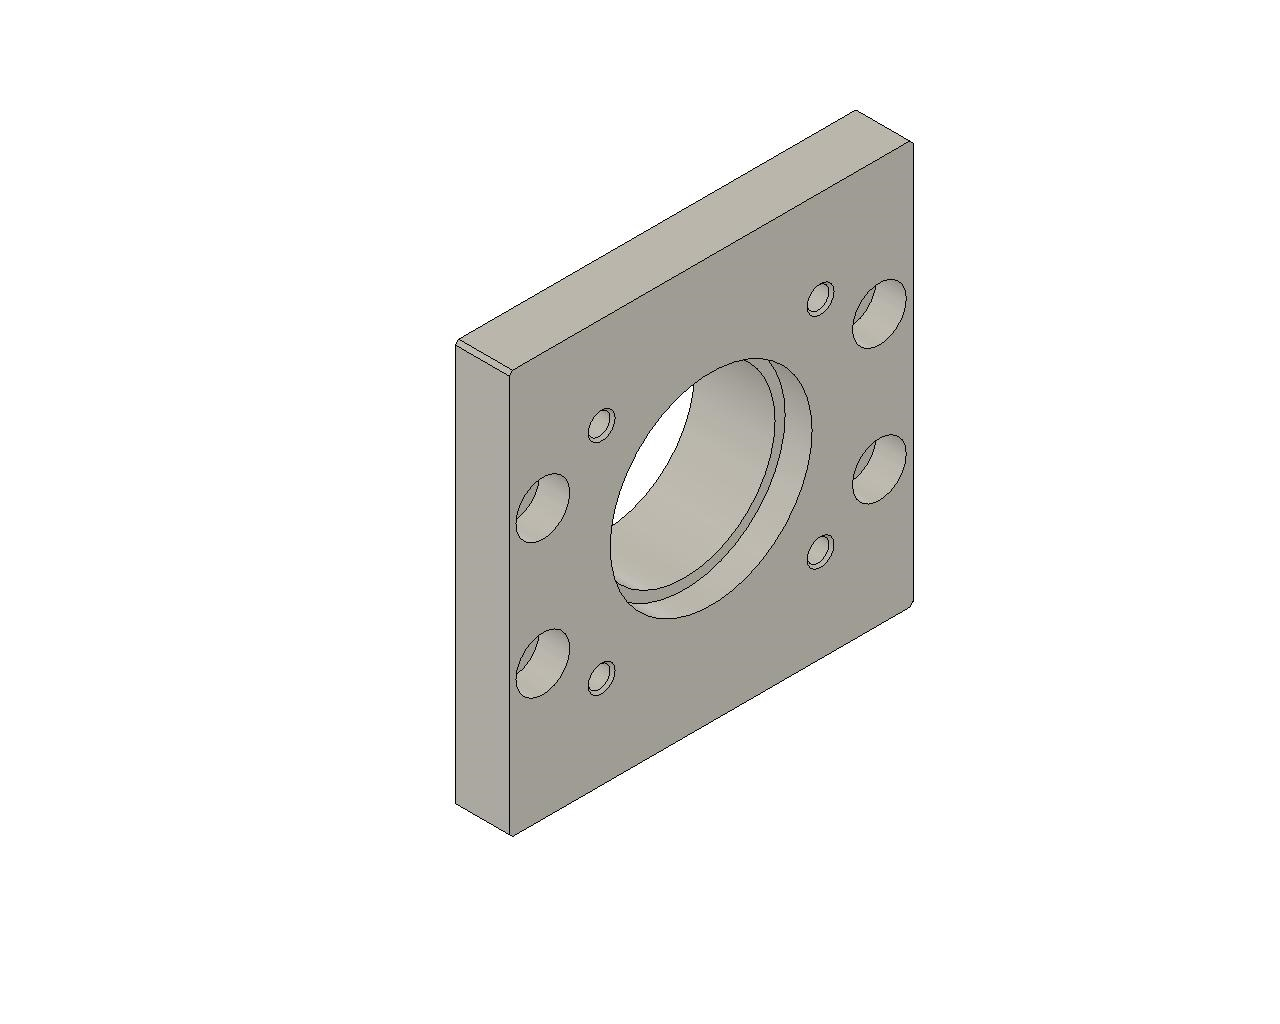 IKO - Motor Bracket for Precision Positioning Table TU